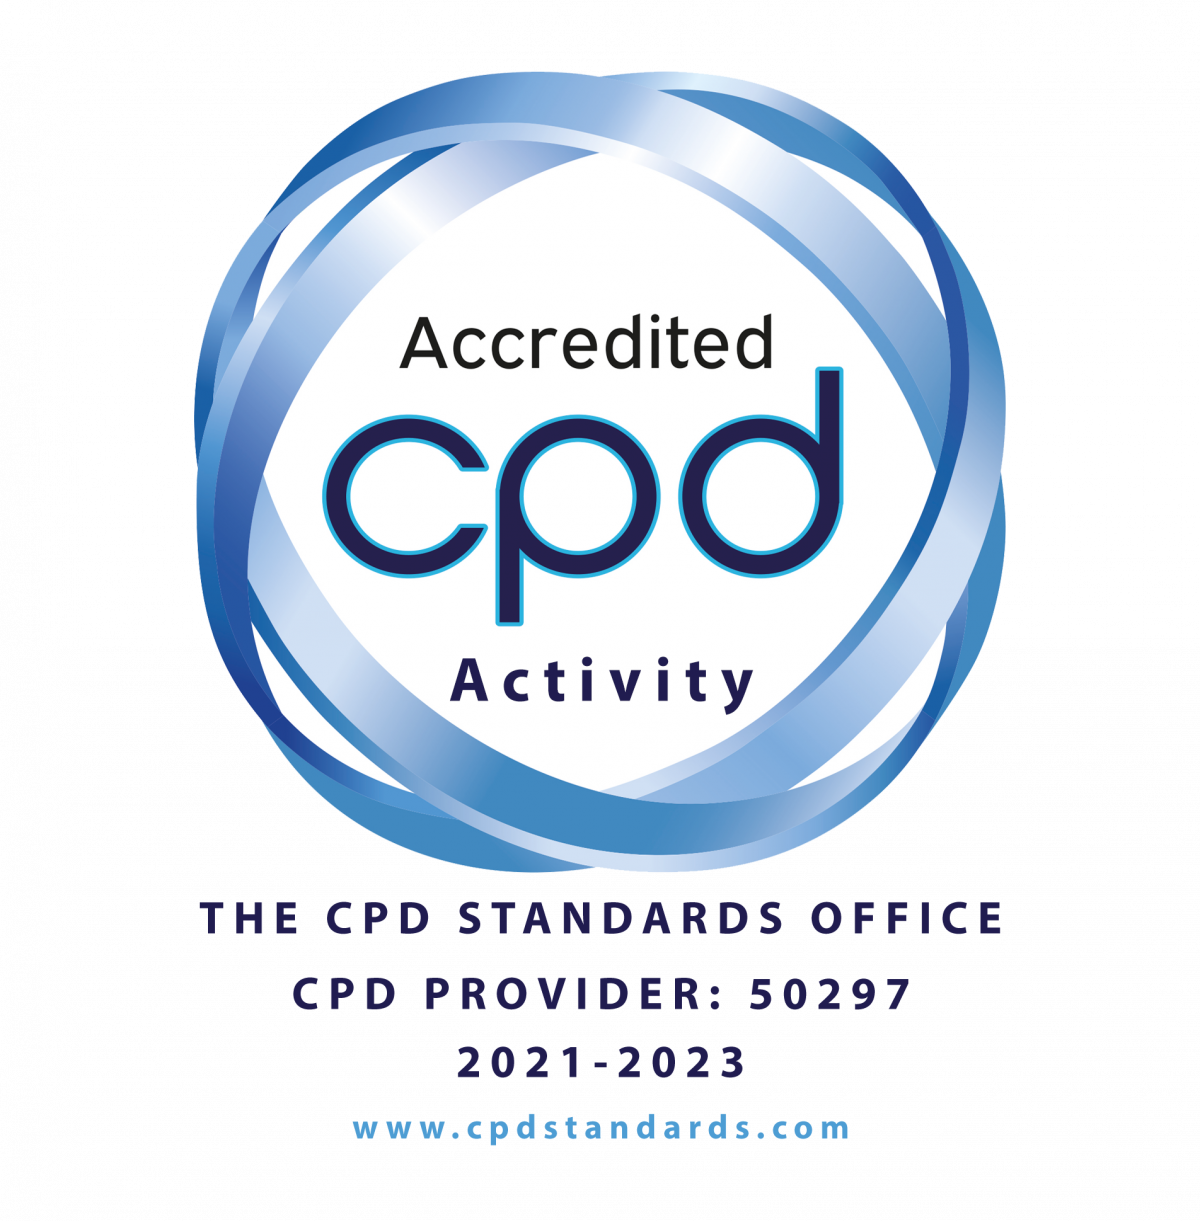 The CPD Standards Office CPD Provider 50297